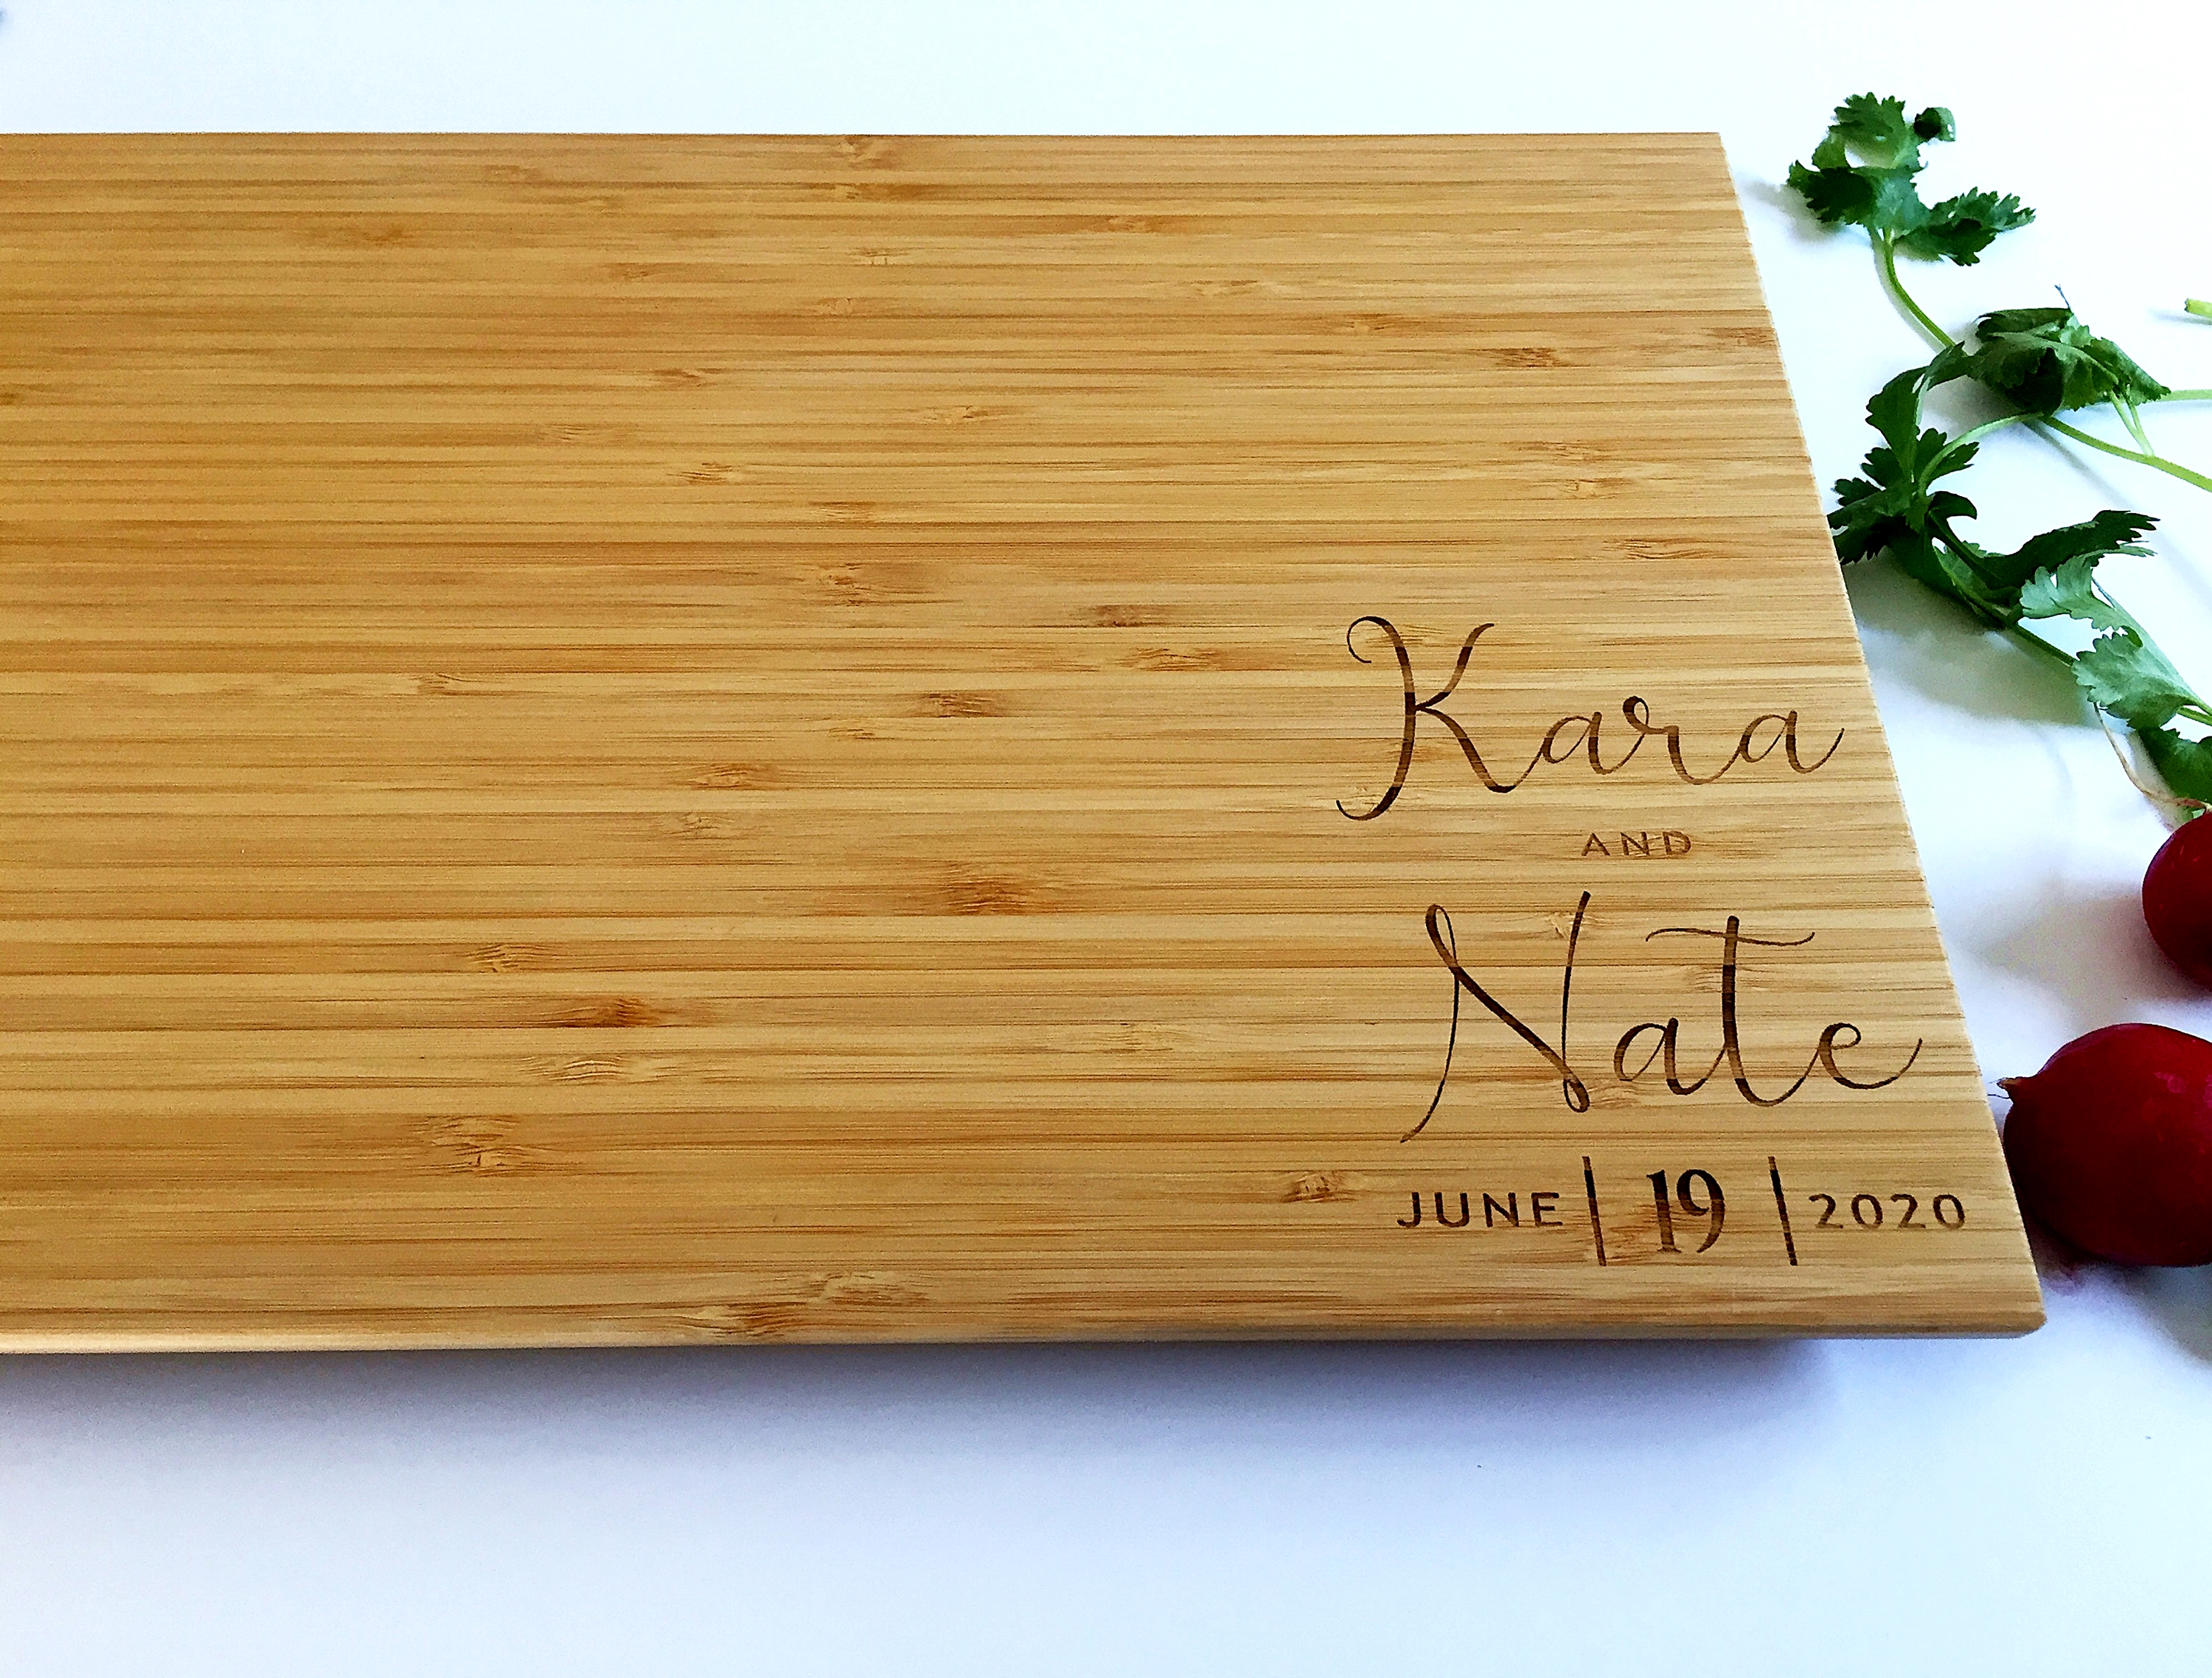 Personalized Engraved Bamboo Cutting Board Wedding Gift Custom Customized Bridal Gift The Village Of Artisans